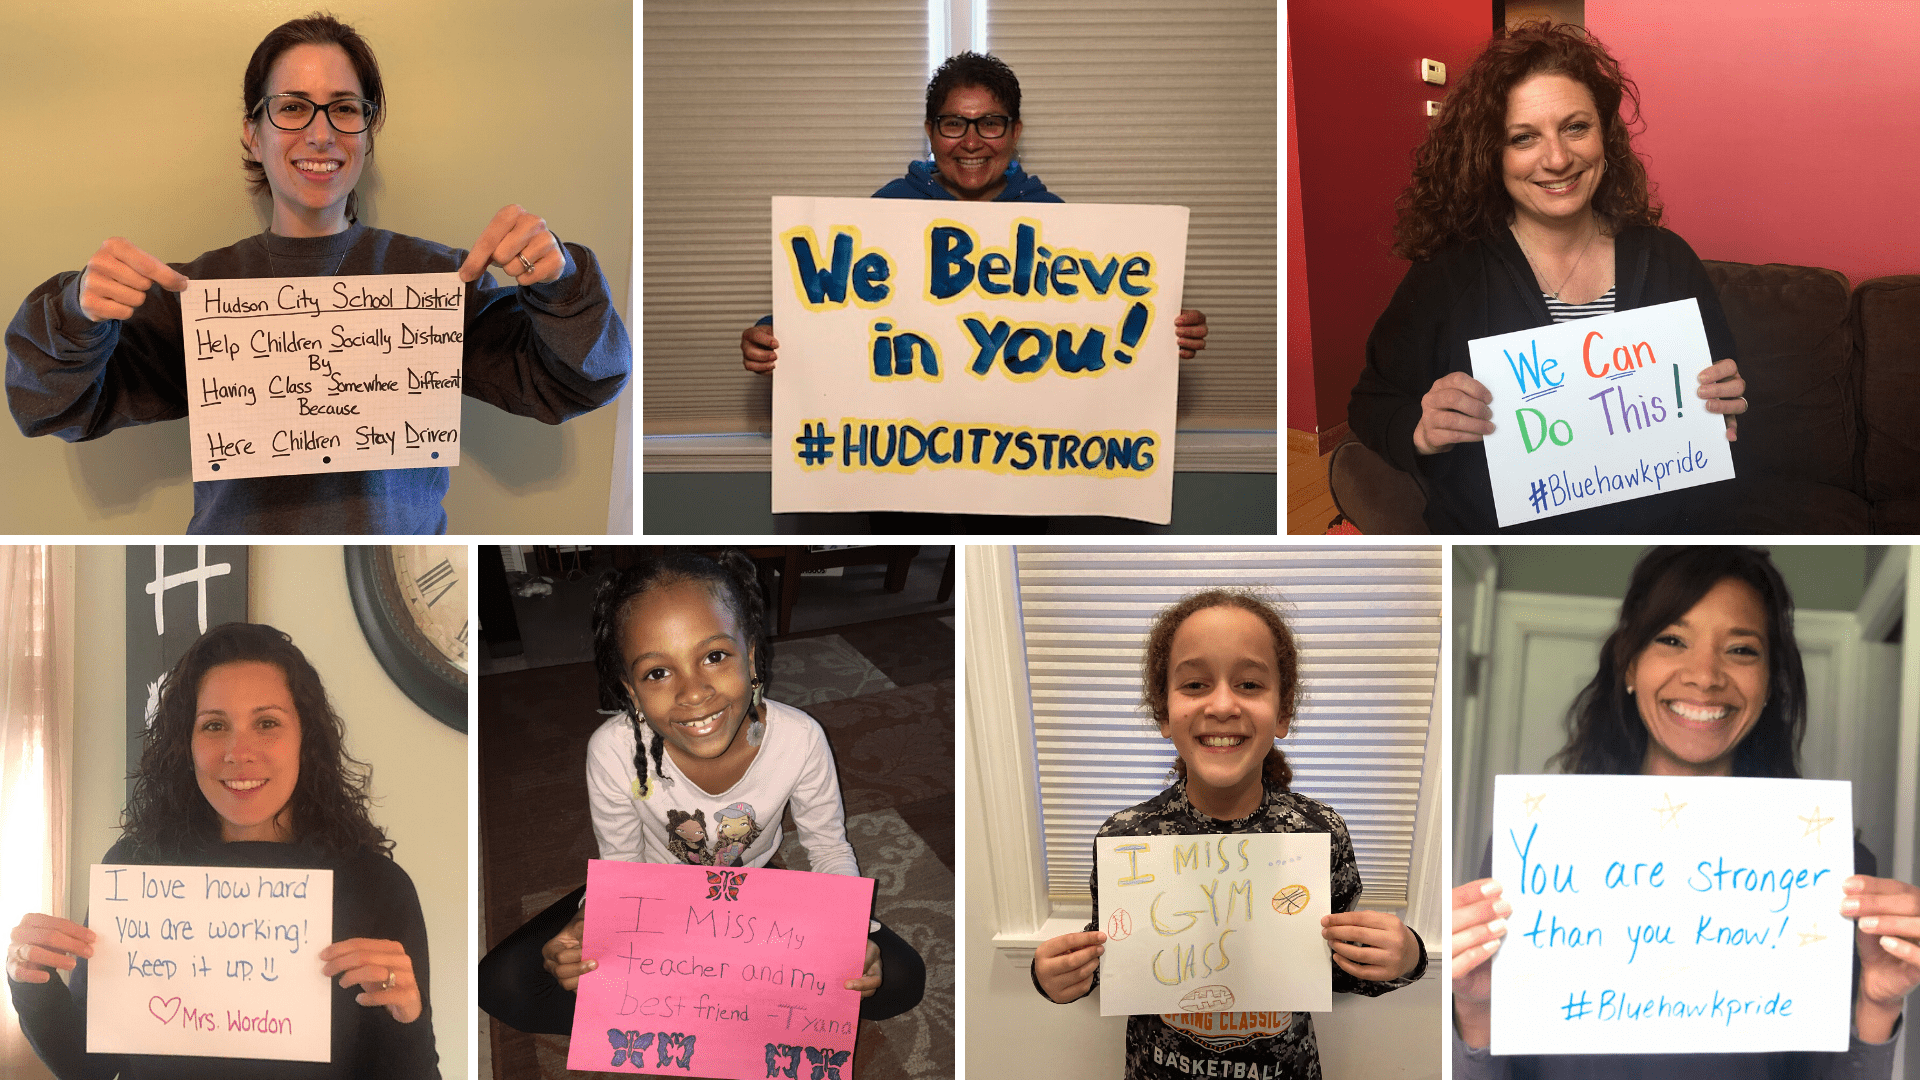 photo grid of teachers and students holding signs with messages